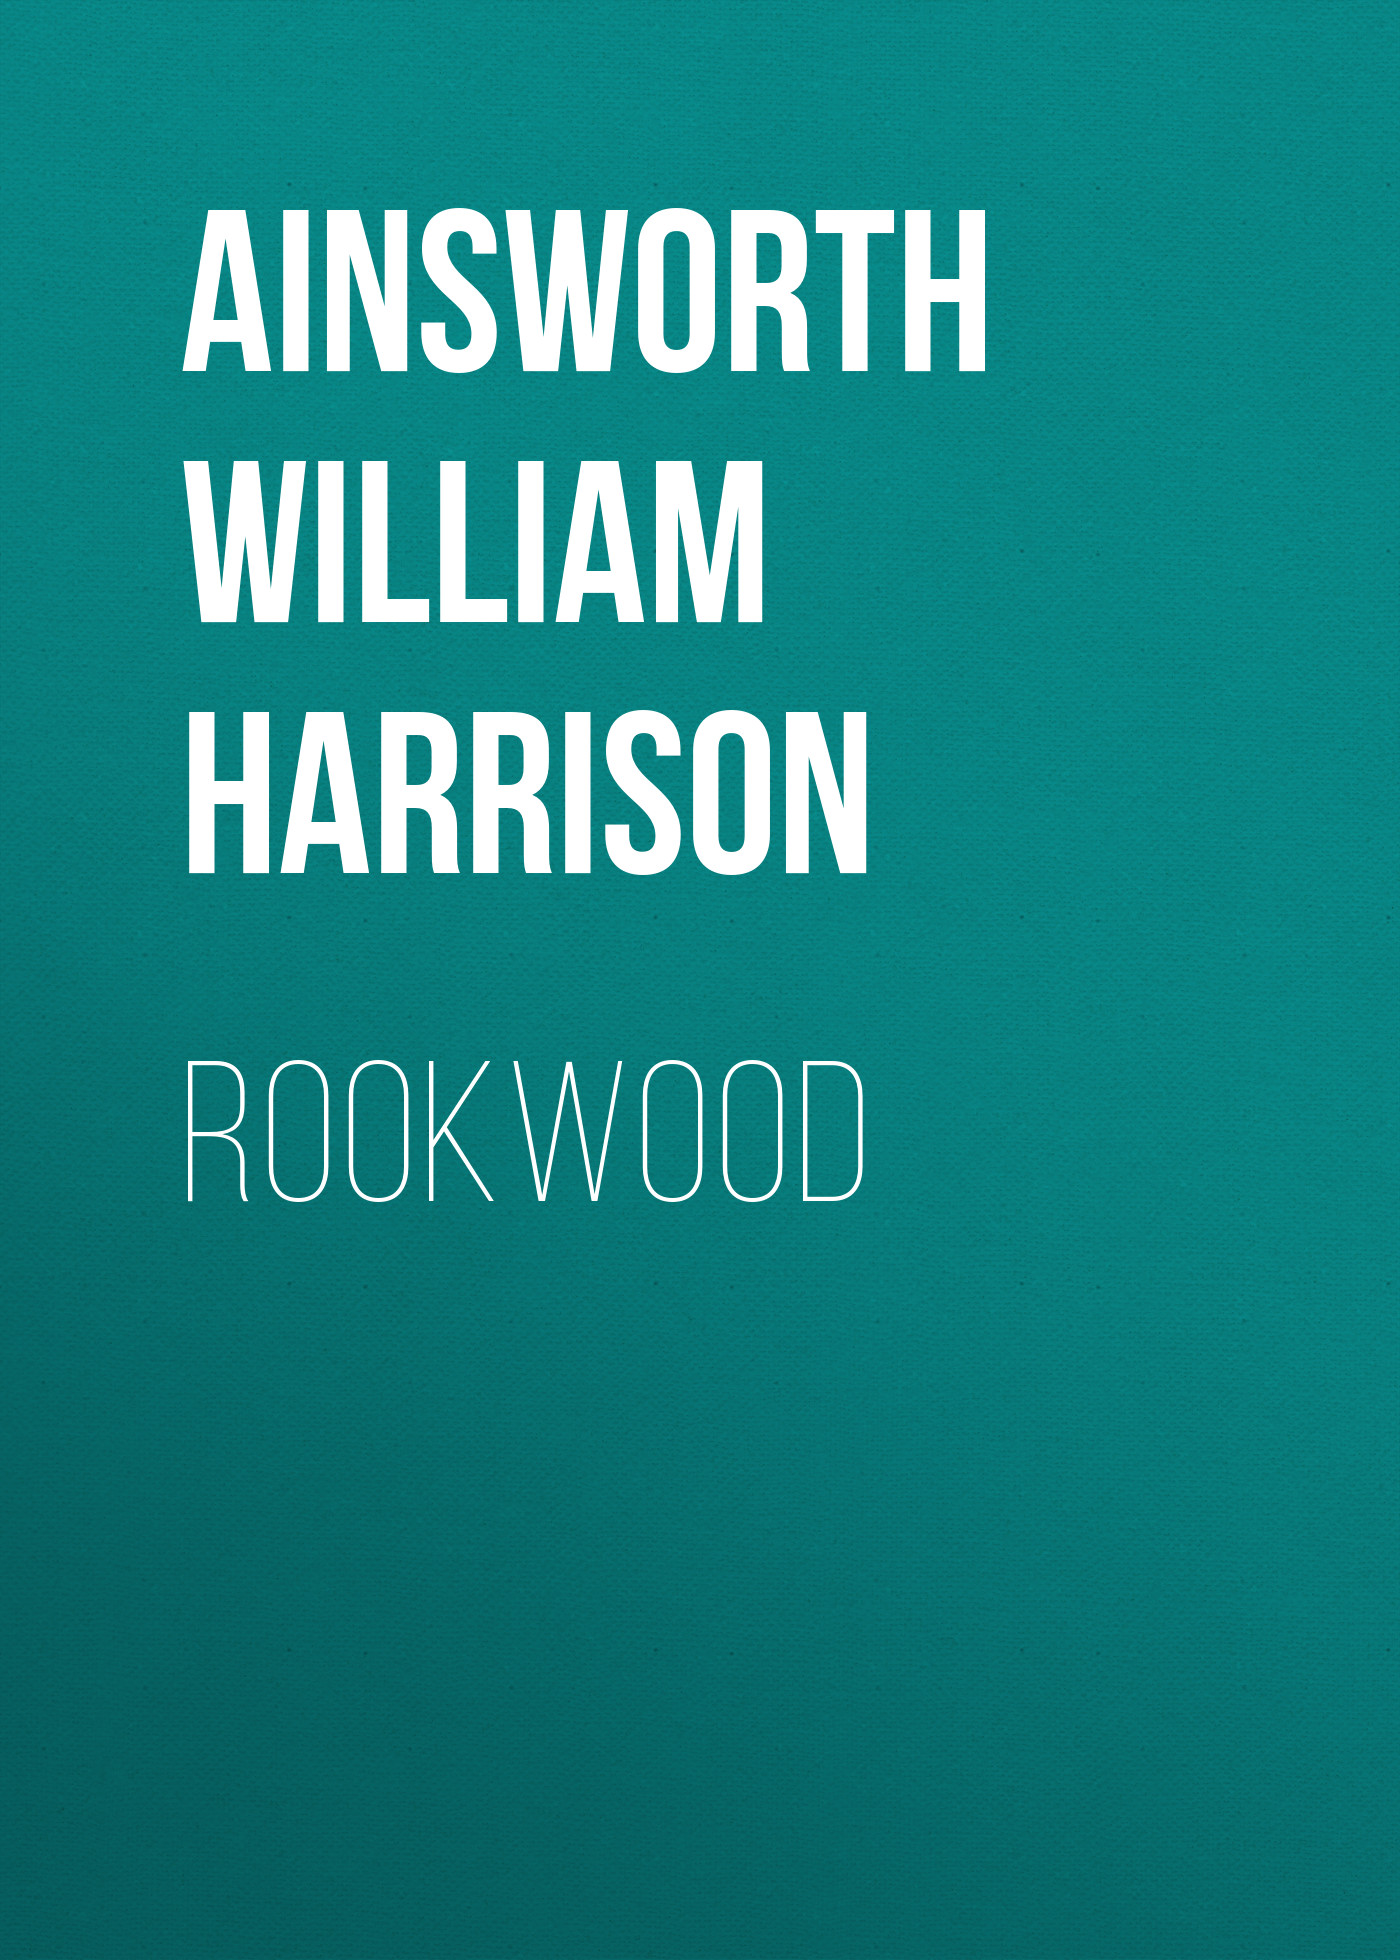 Ainsworth William Harrison Rookwood ainsworth william harrison windsor castle